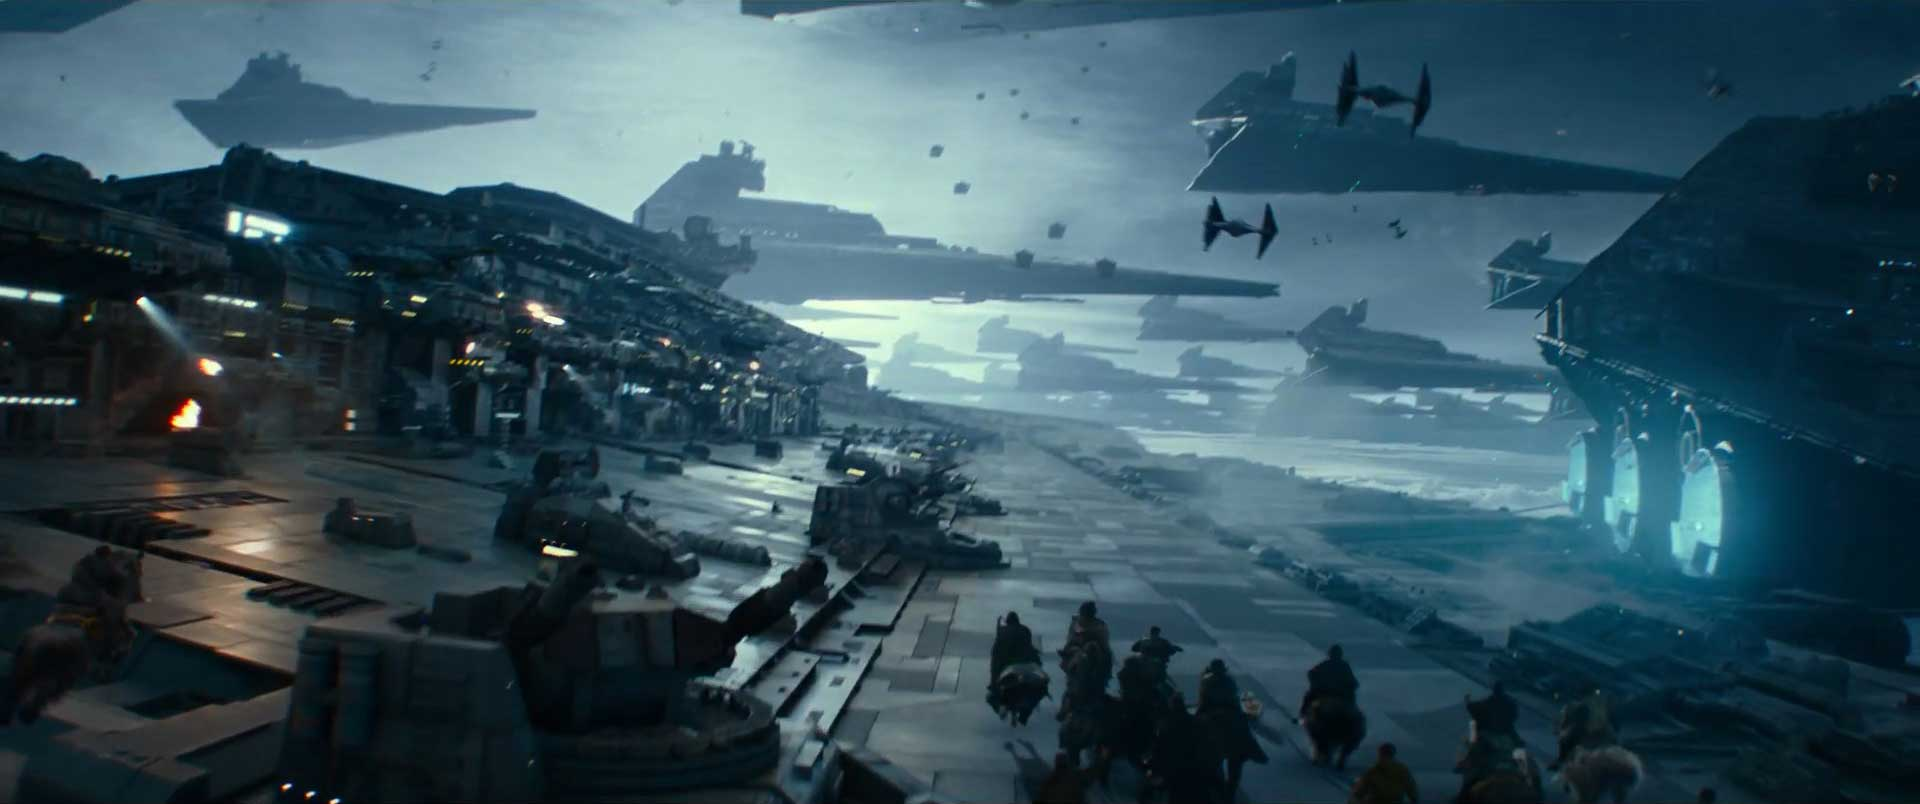 star wars trailer - photo #41